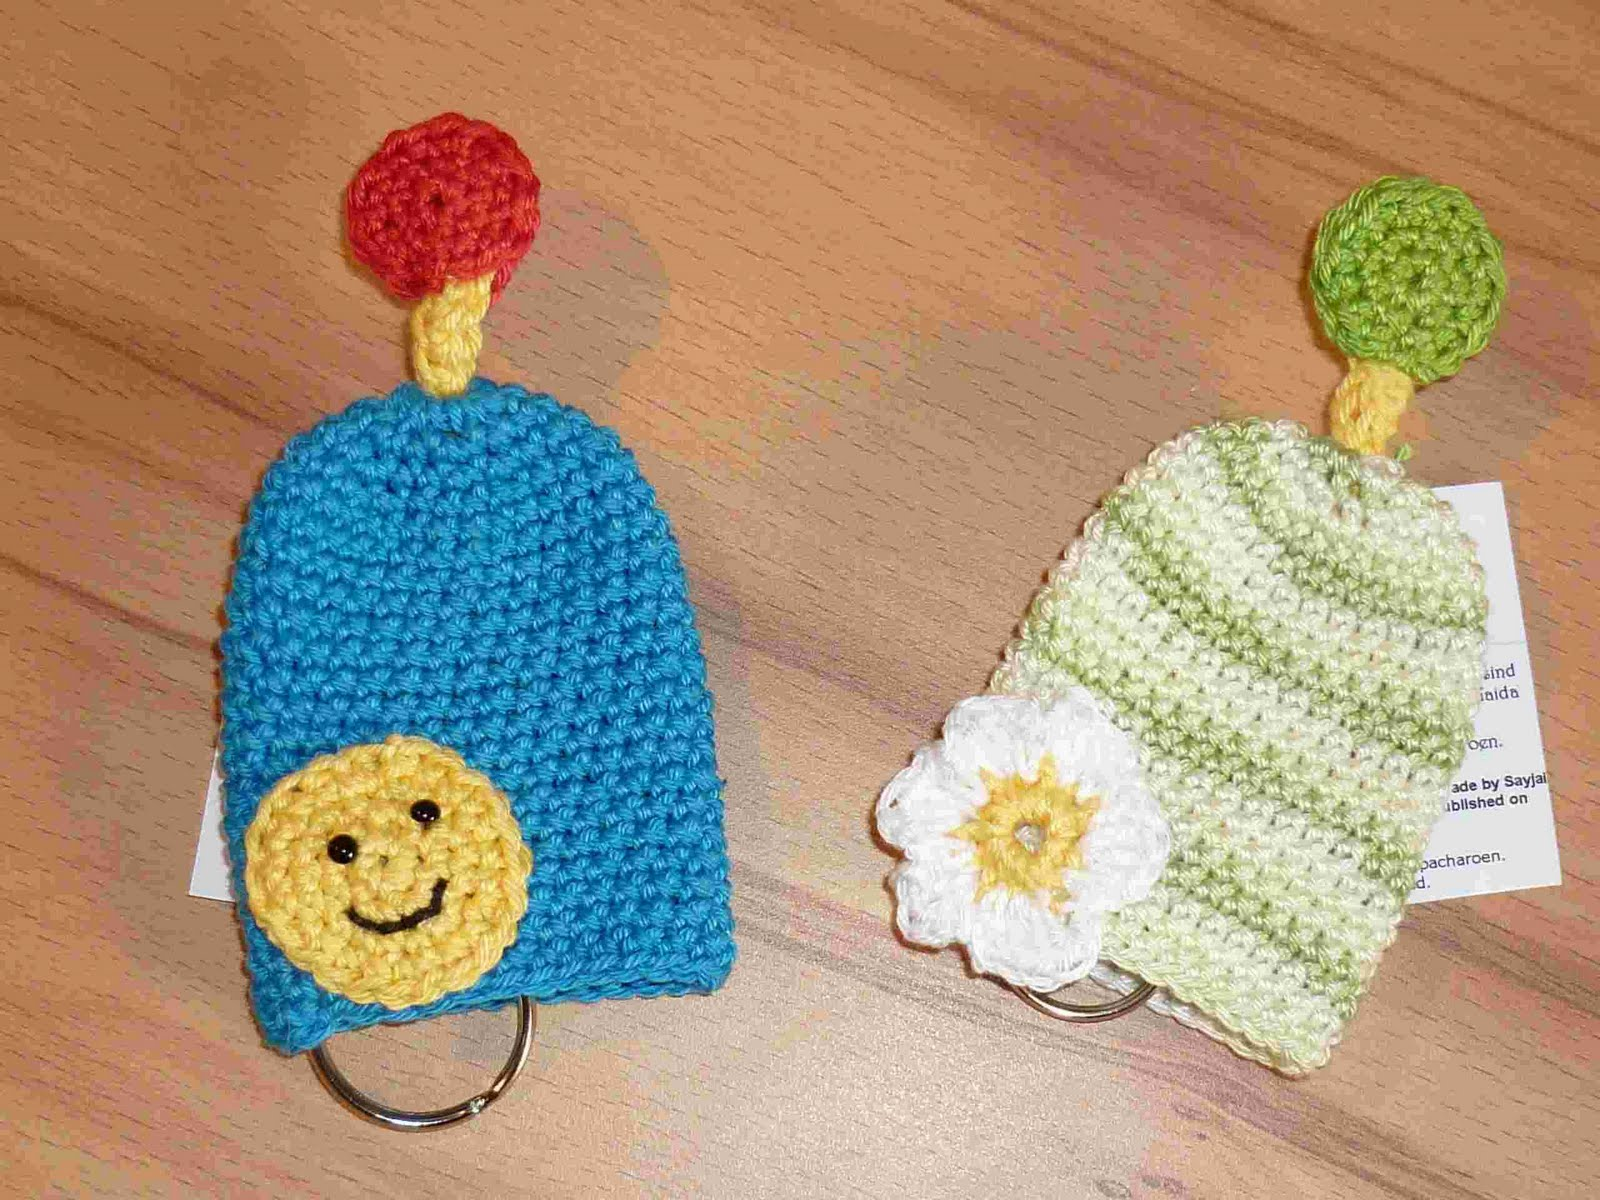 Amigurumi Flower Free Pattern : 2000 Free Amigurumi Patterns: Flower Key Cozy